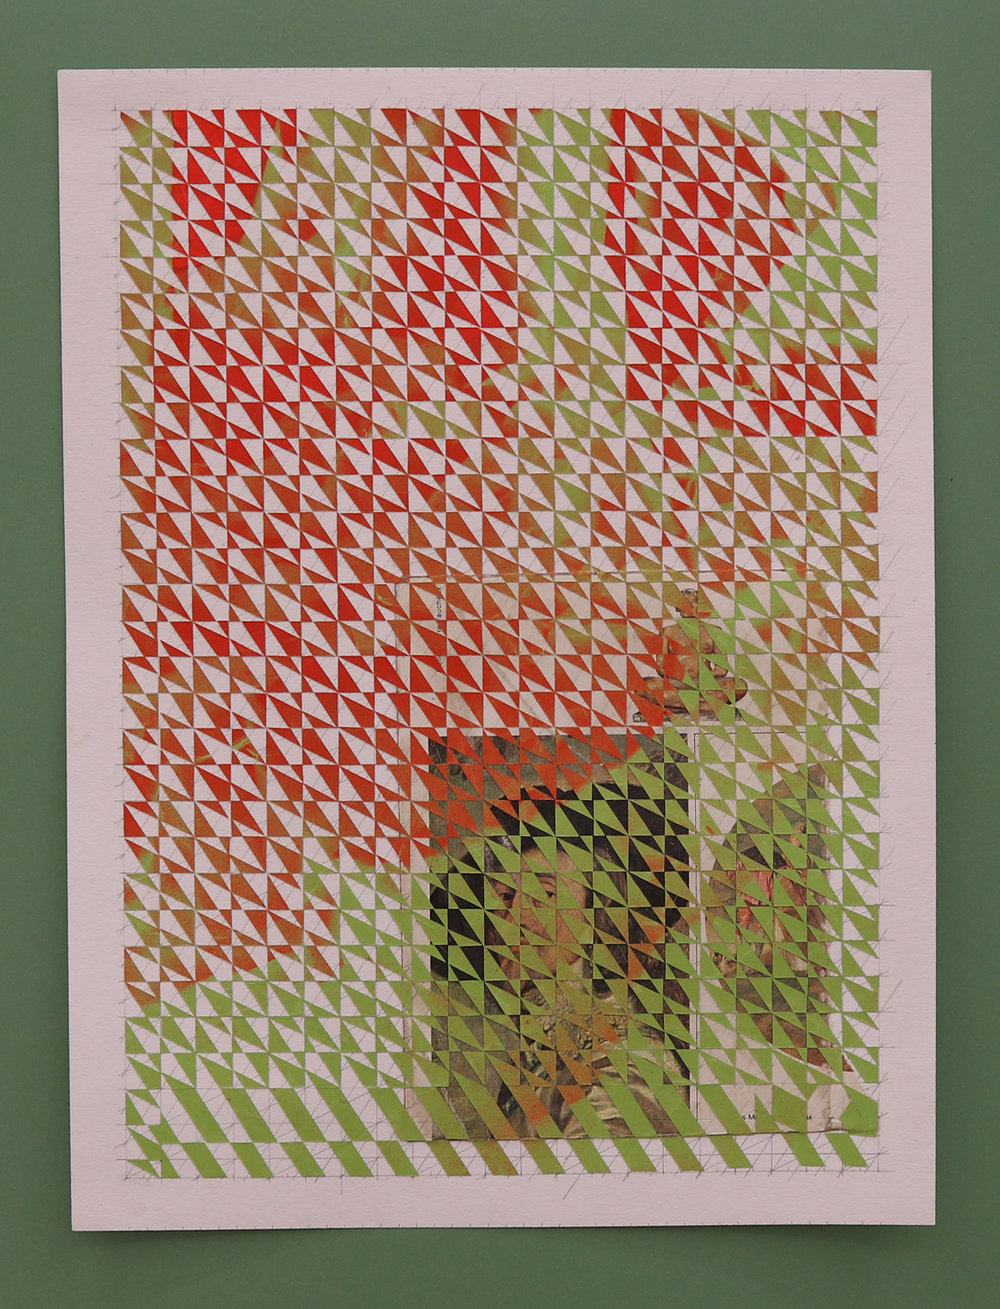 Untitled, part 1 (red, green), 2016, spray paint on paper collage, book page on paper mounted on plastic laminate, 20 x 30 cm.